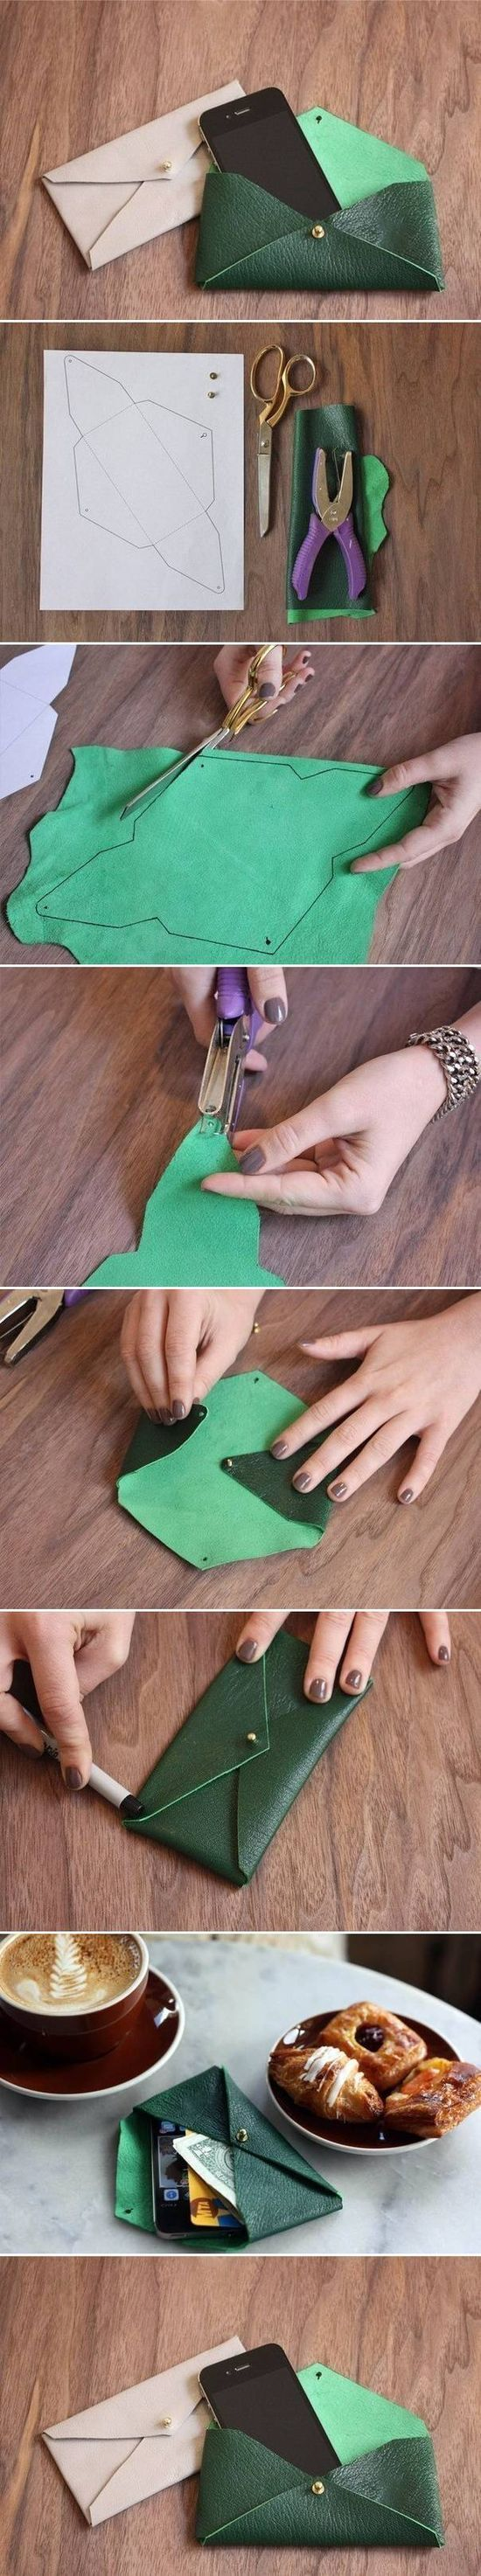 DIY Leather Envelope | http://iphonewrapper.kira.flappyhouse.com